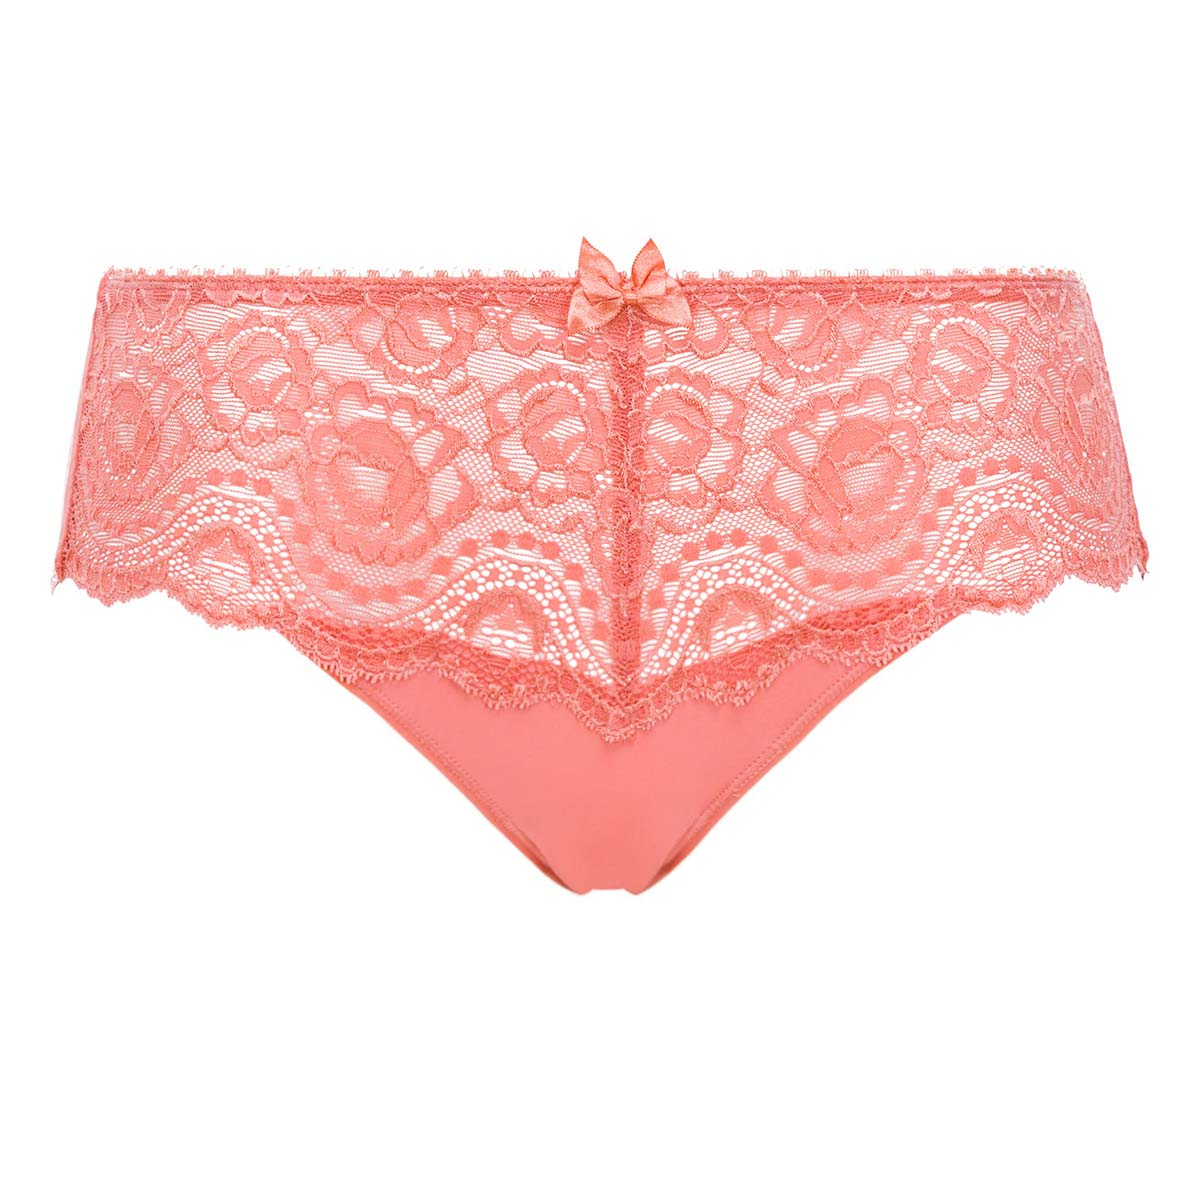 Midi Knickers in Cinnamon Orange Lace - Flower Elegance - PLAYTEX